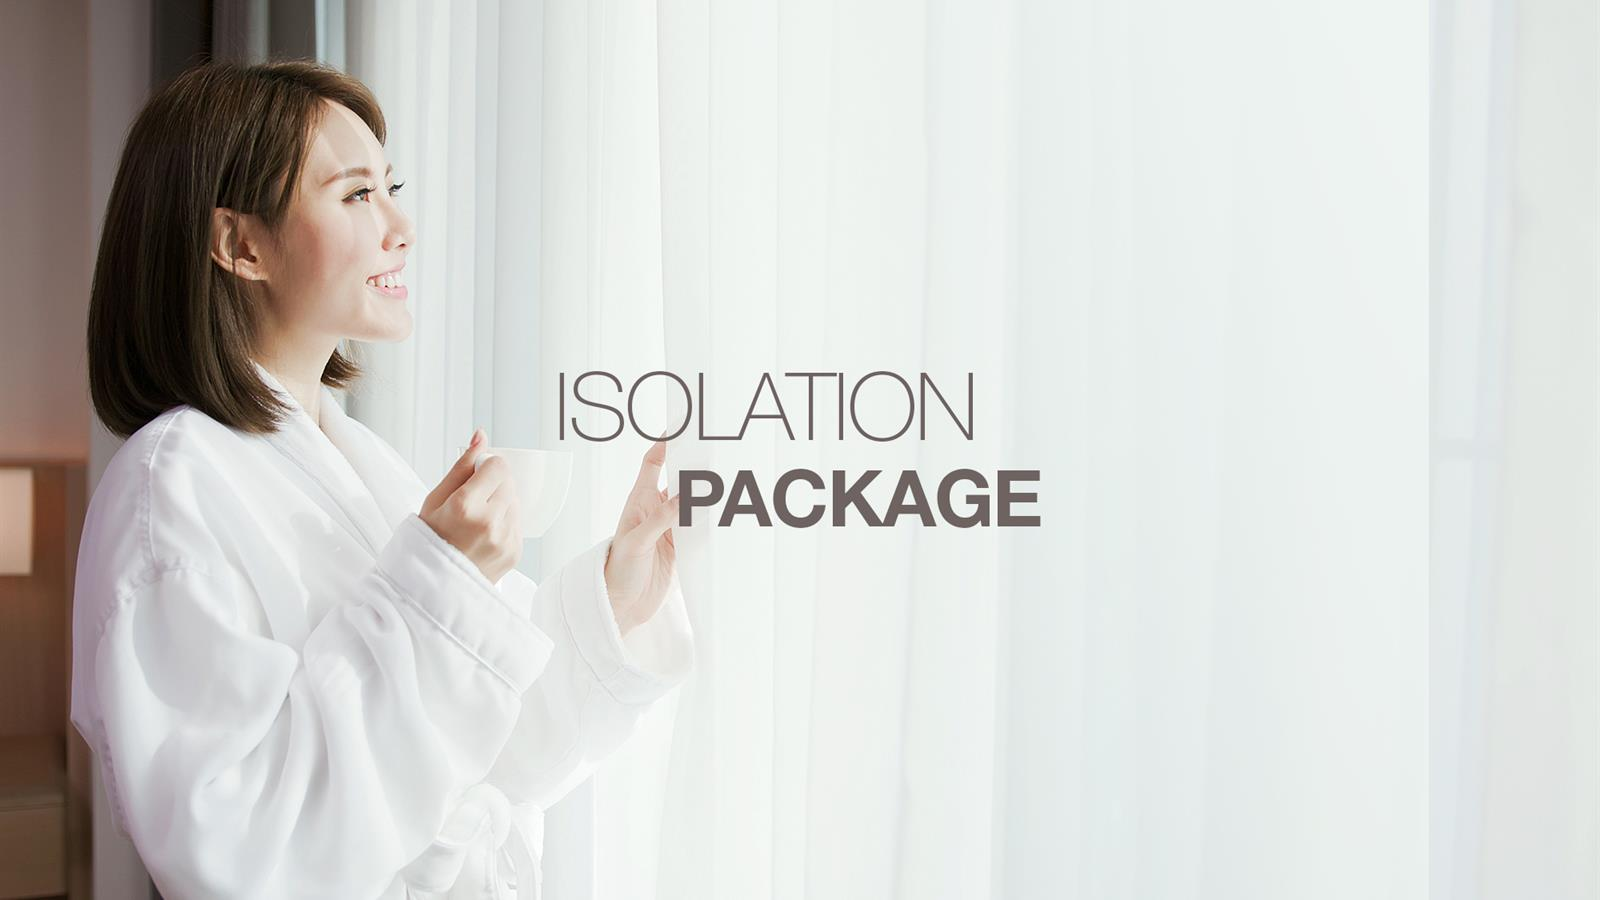 Isolation Package